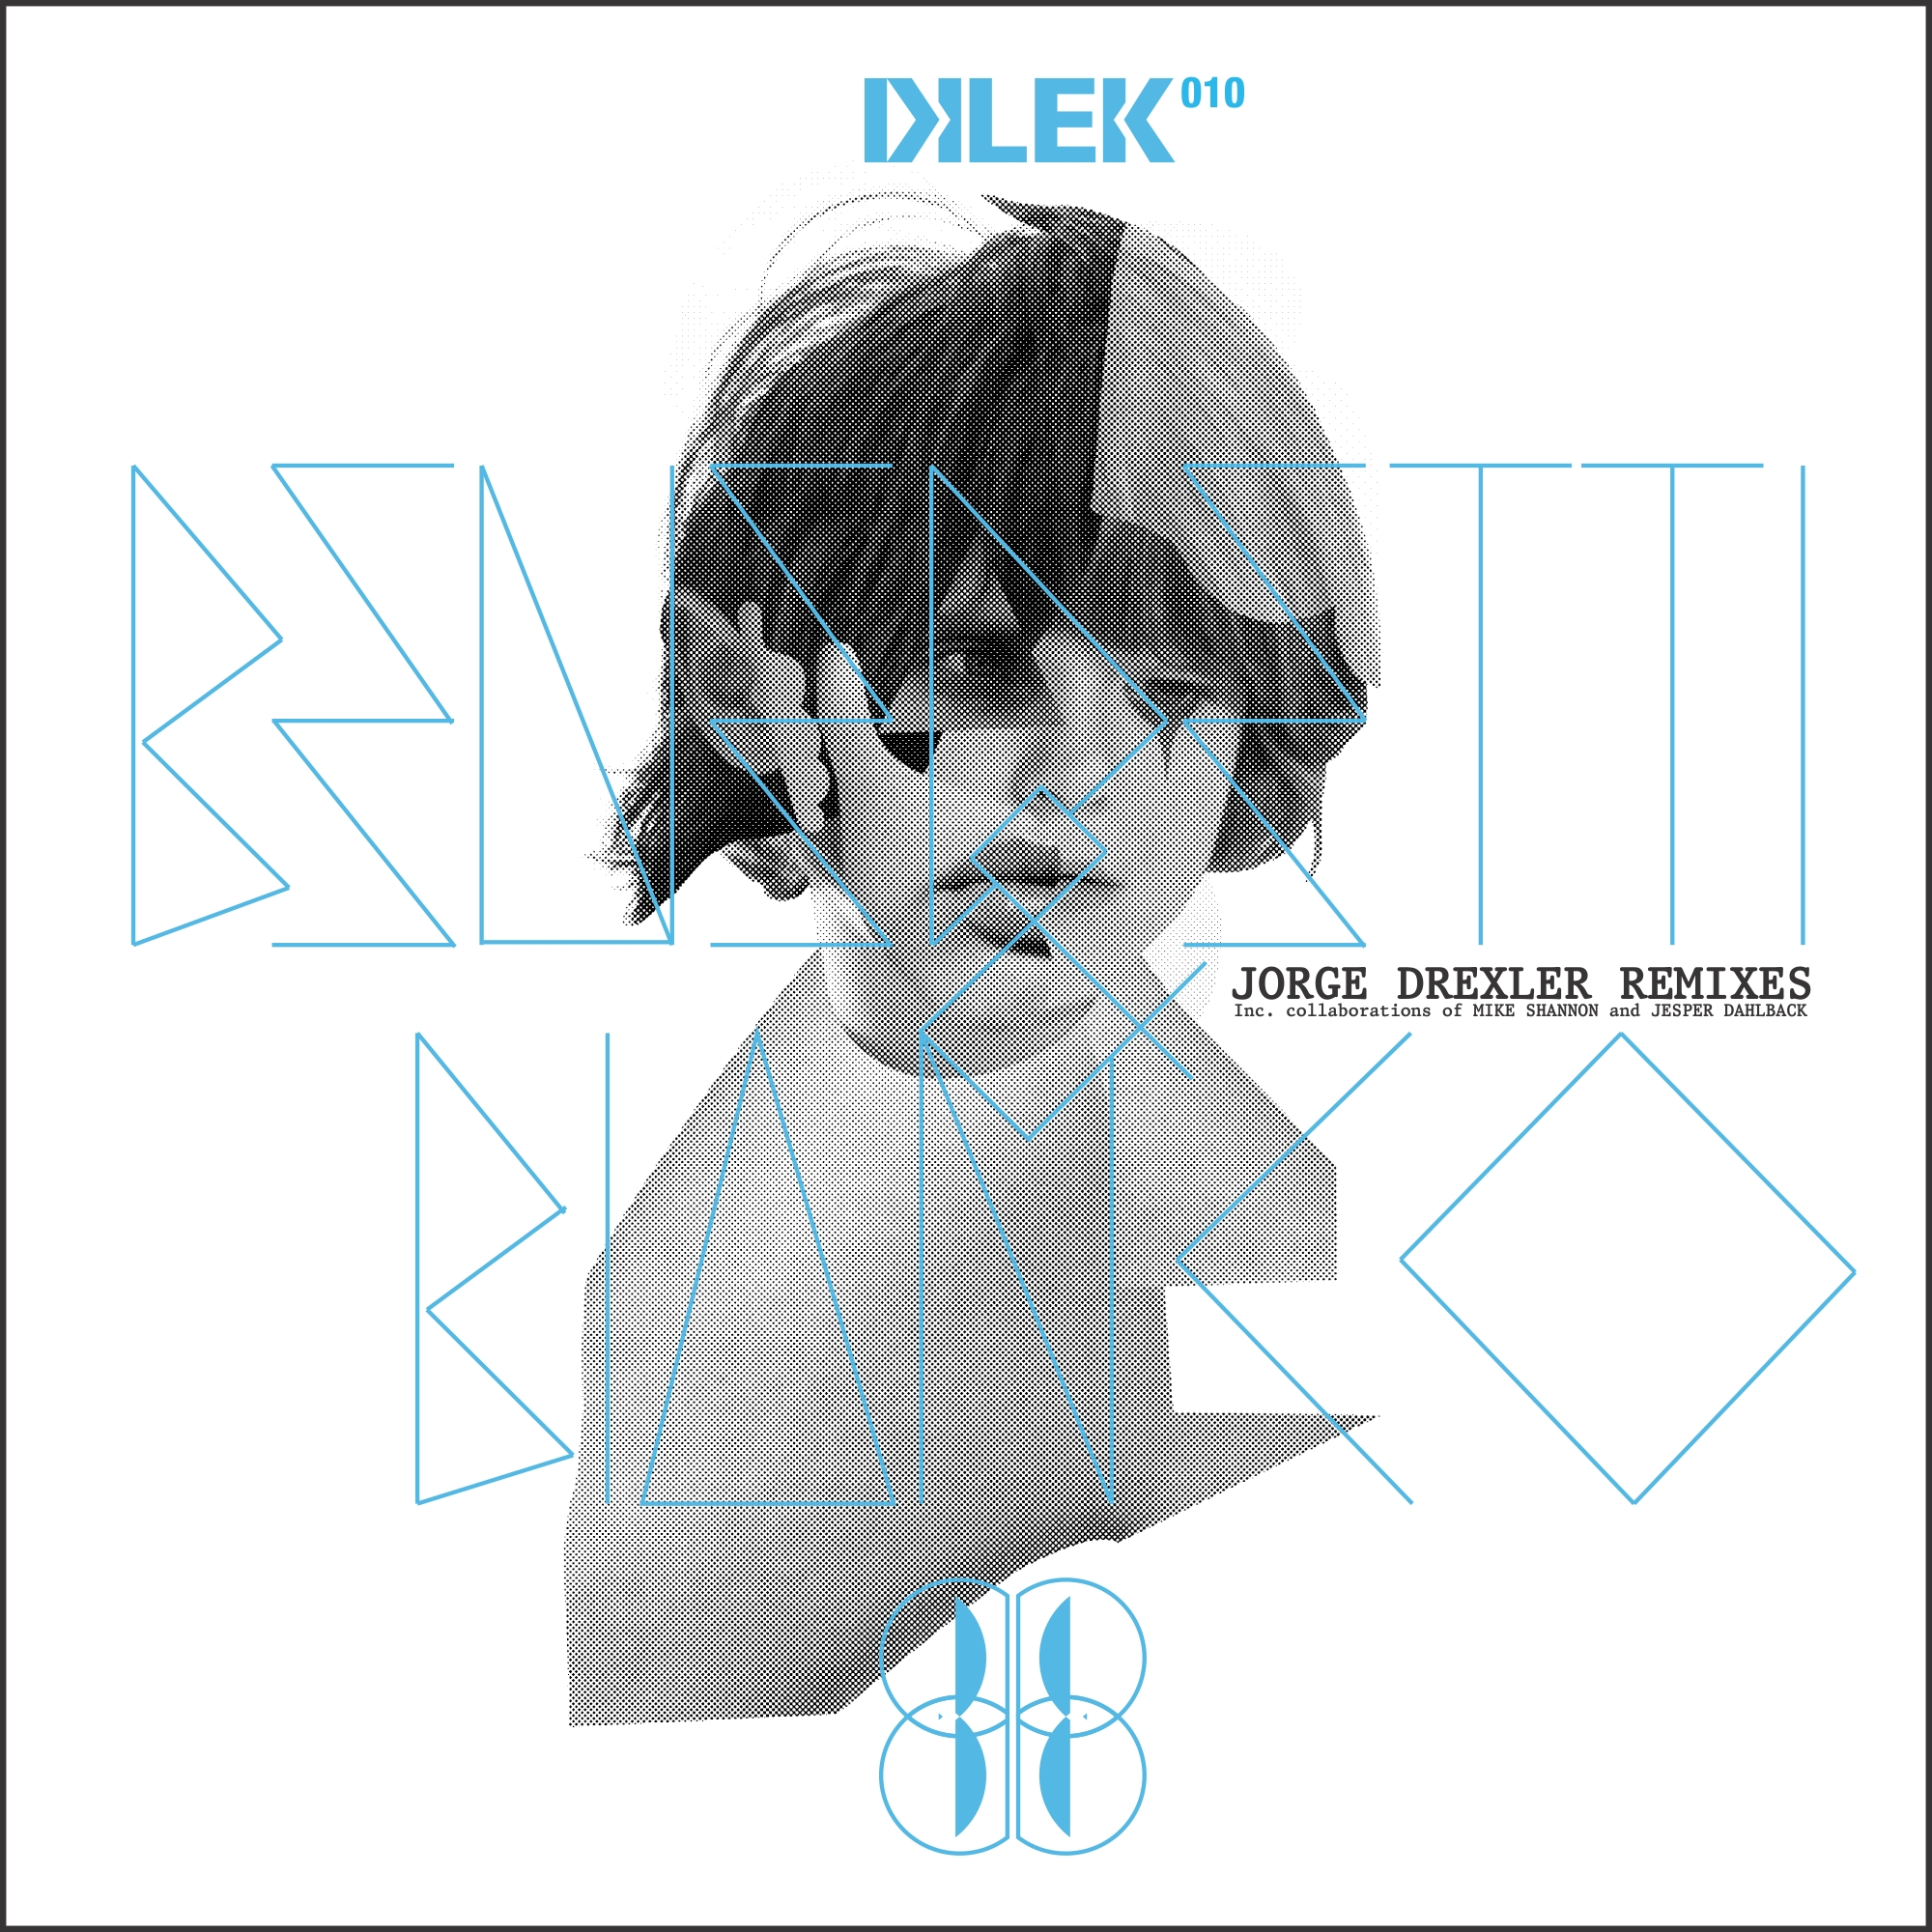 Benedetti and Bianco - Jorge Drexler Remixes